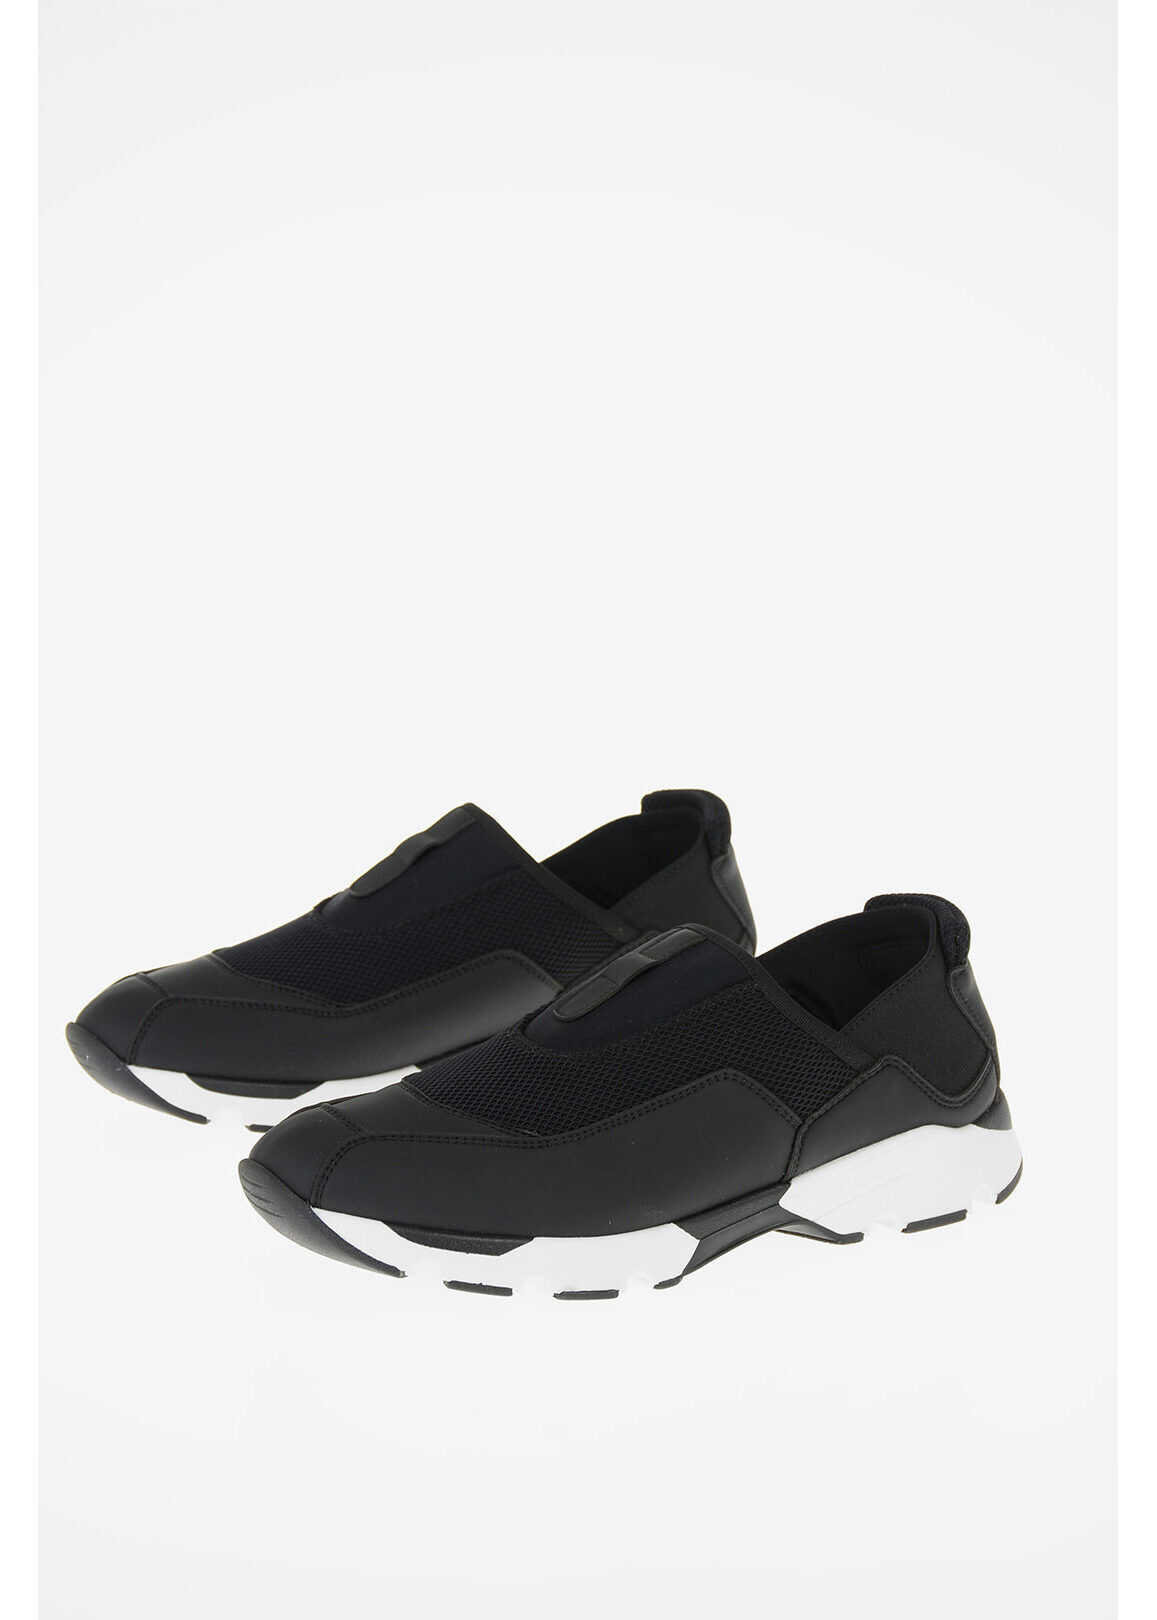 Marni Stretch Fabbric Slip On Sneakers with Eco Leather Details BLACK imagine b-mall.ro